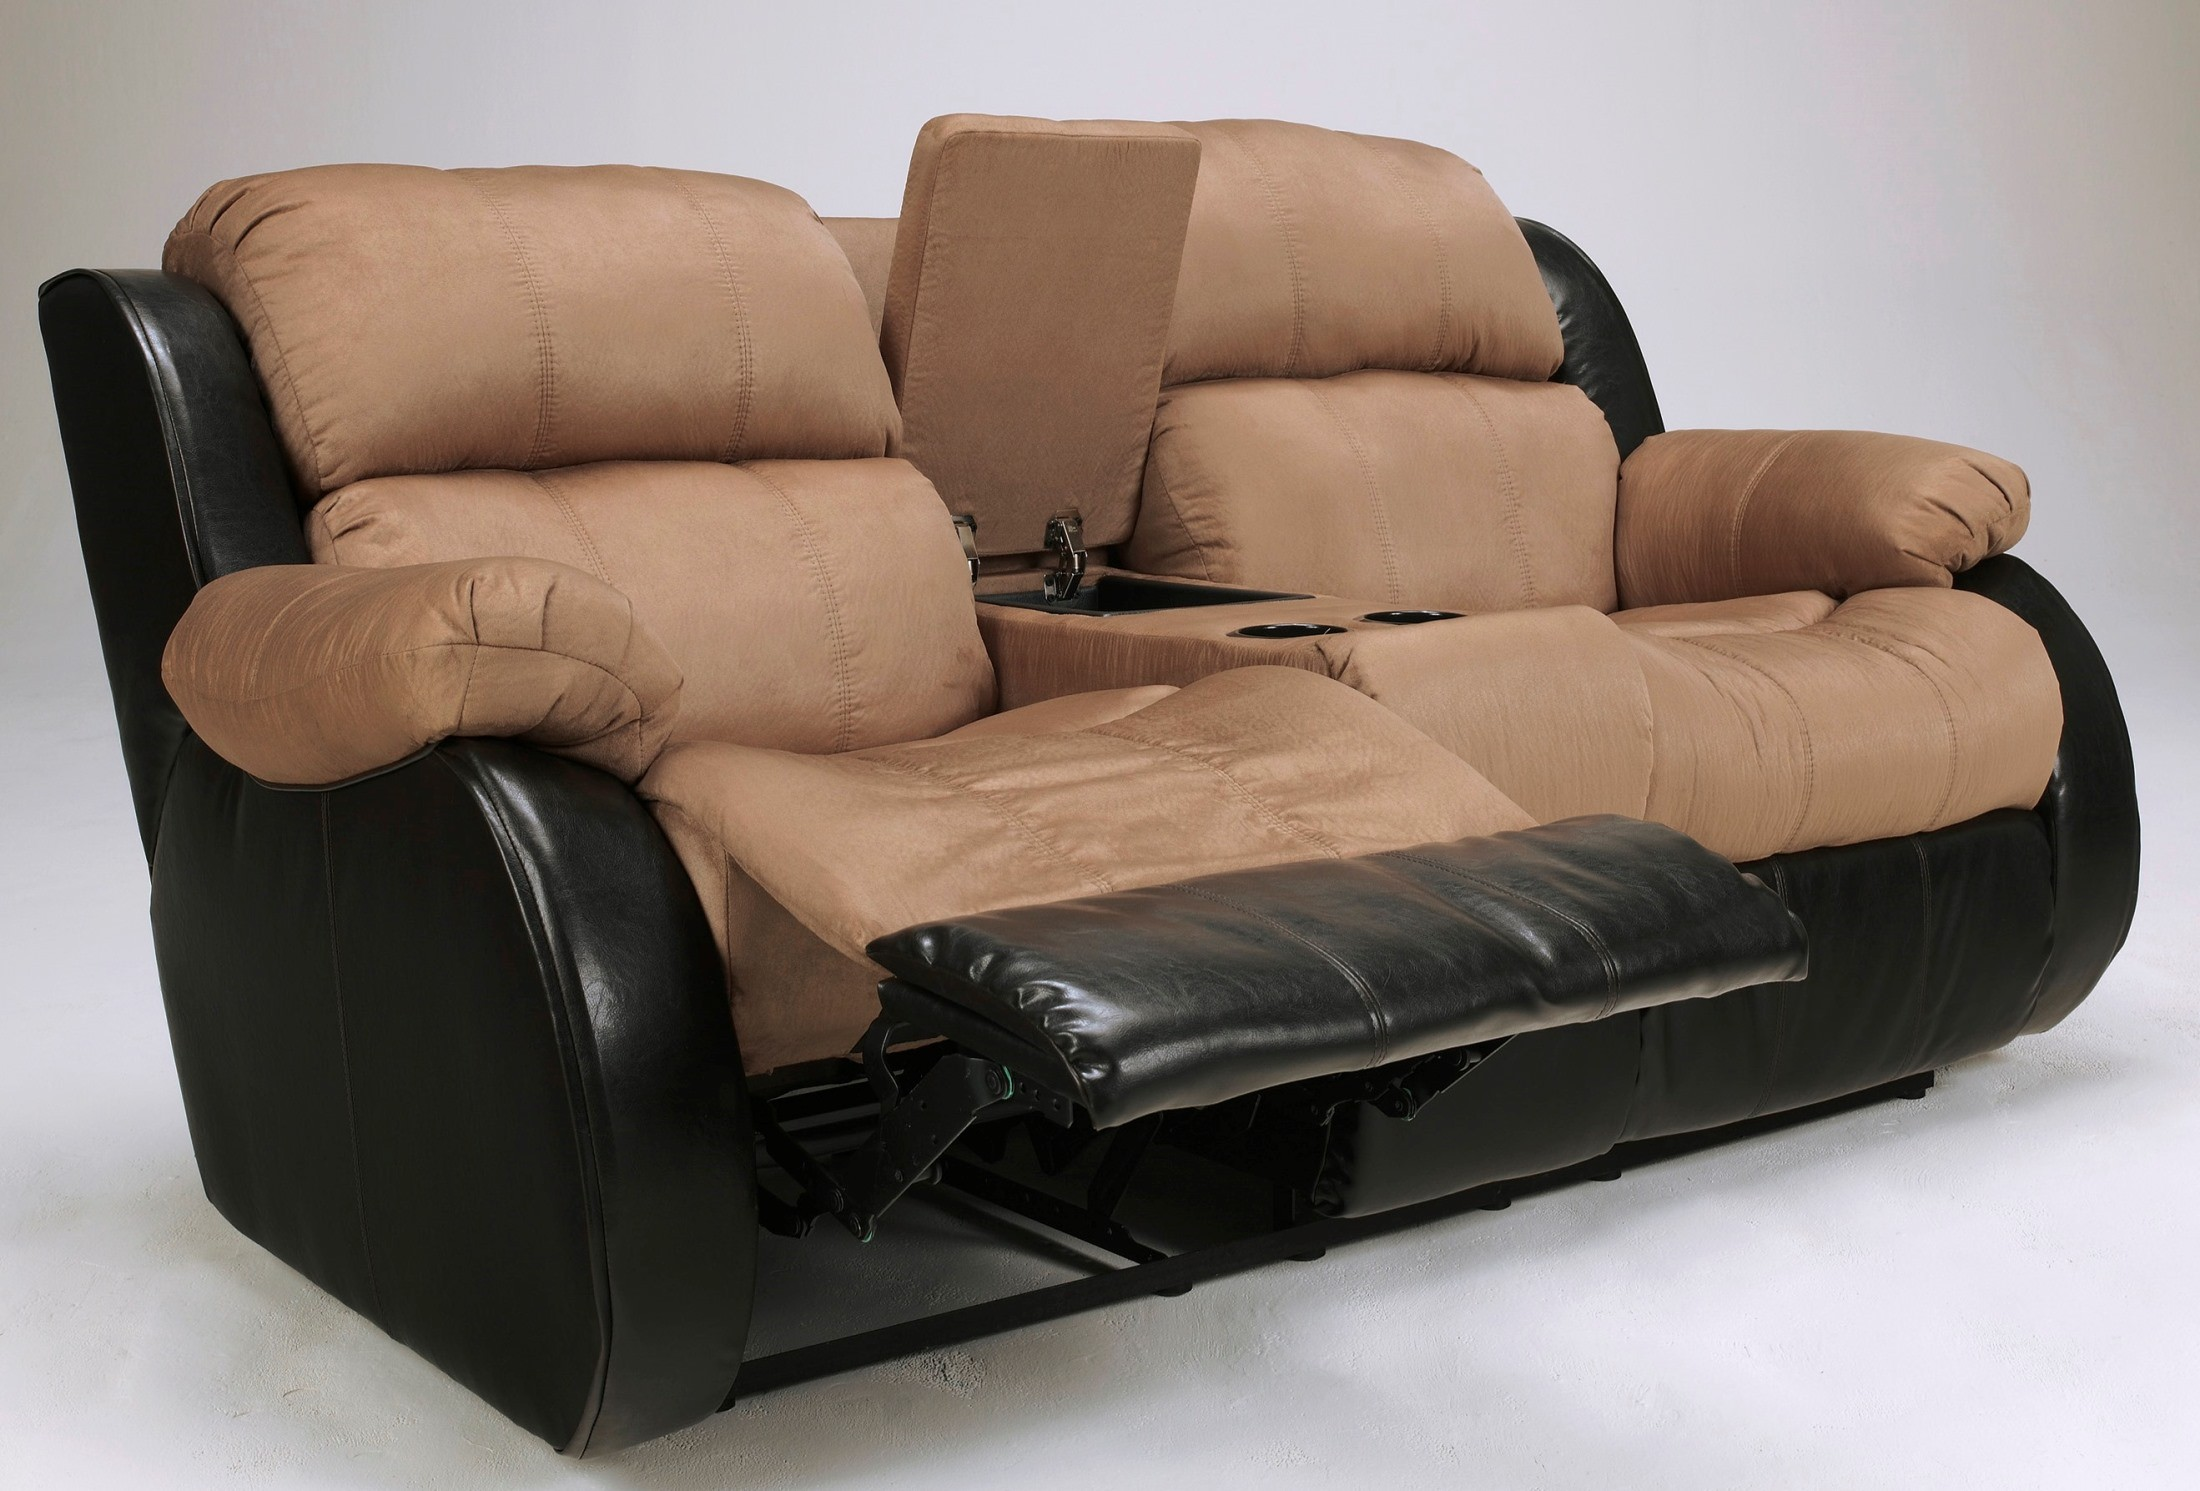 Presley Cocoa Double Reclining Loveseat With Console